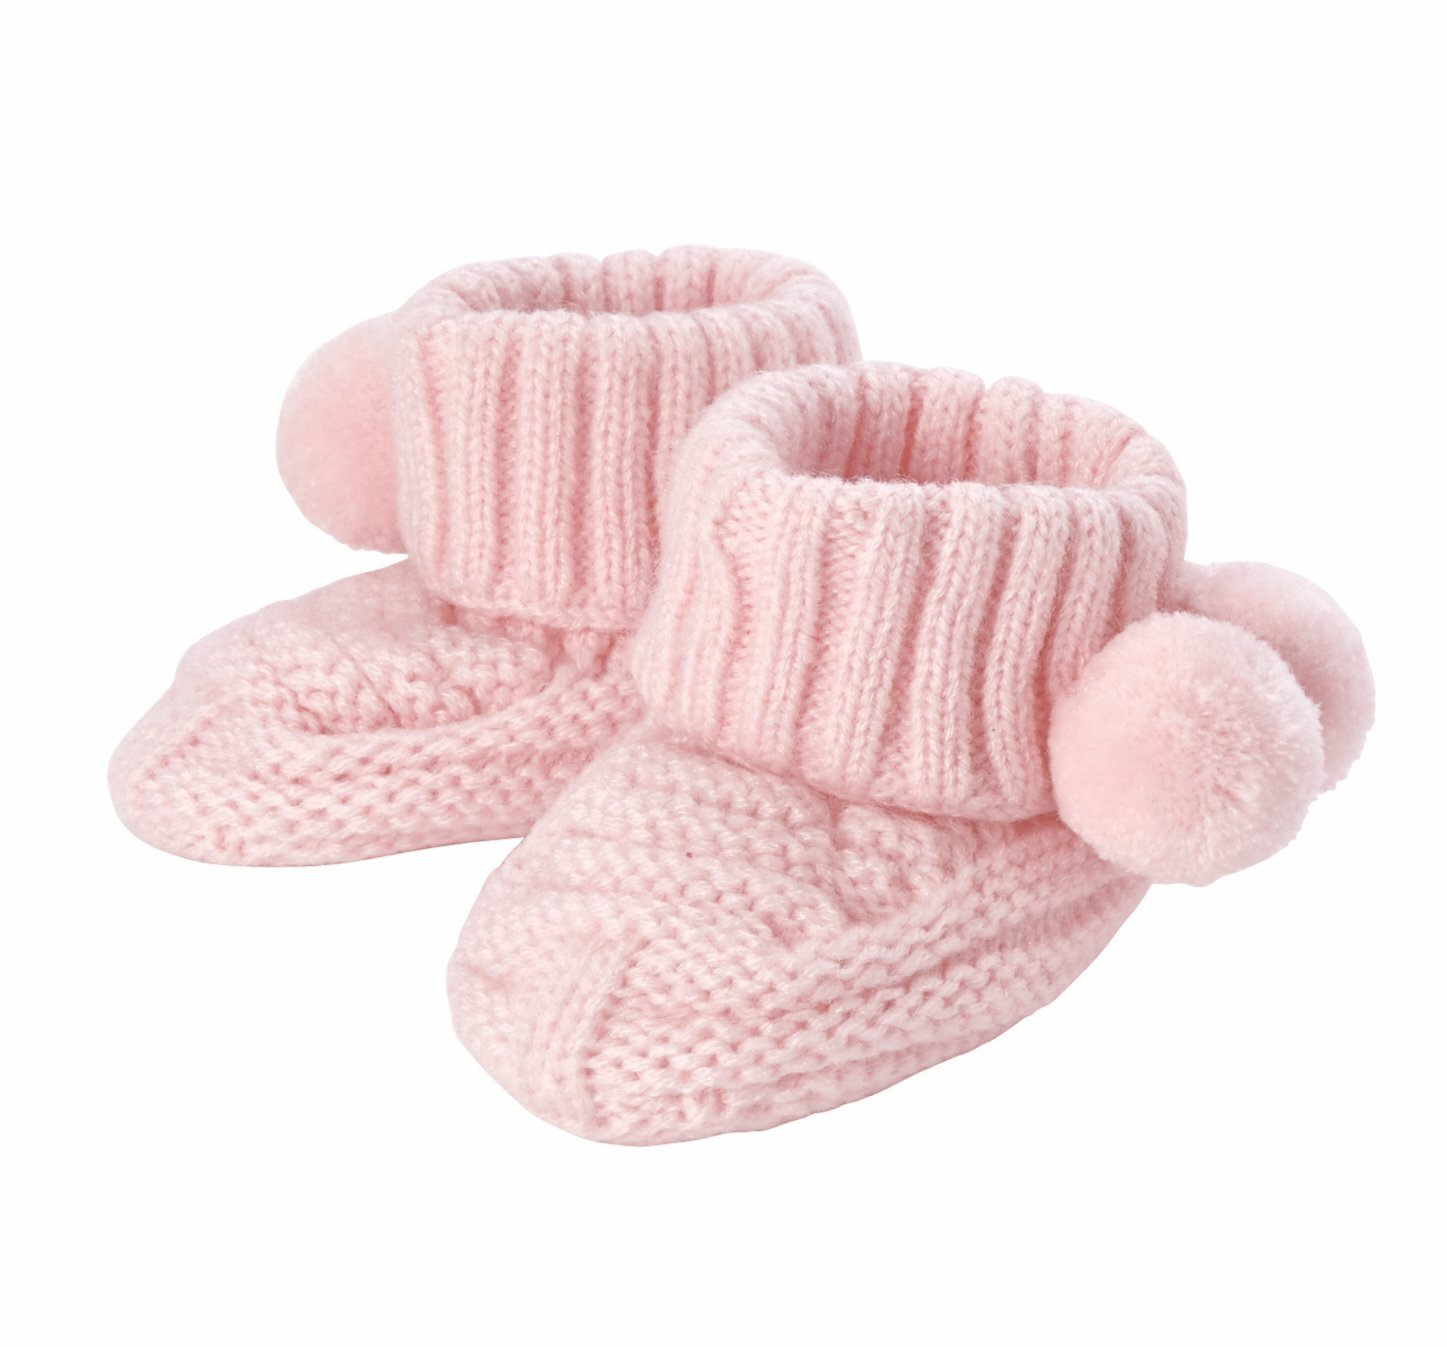 Mud Pie Pom Pom Booties Cotton Baby Products (Pink)